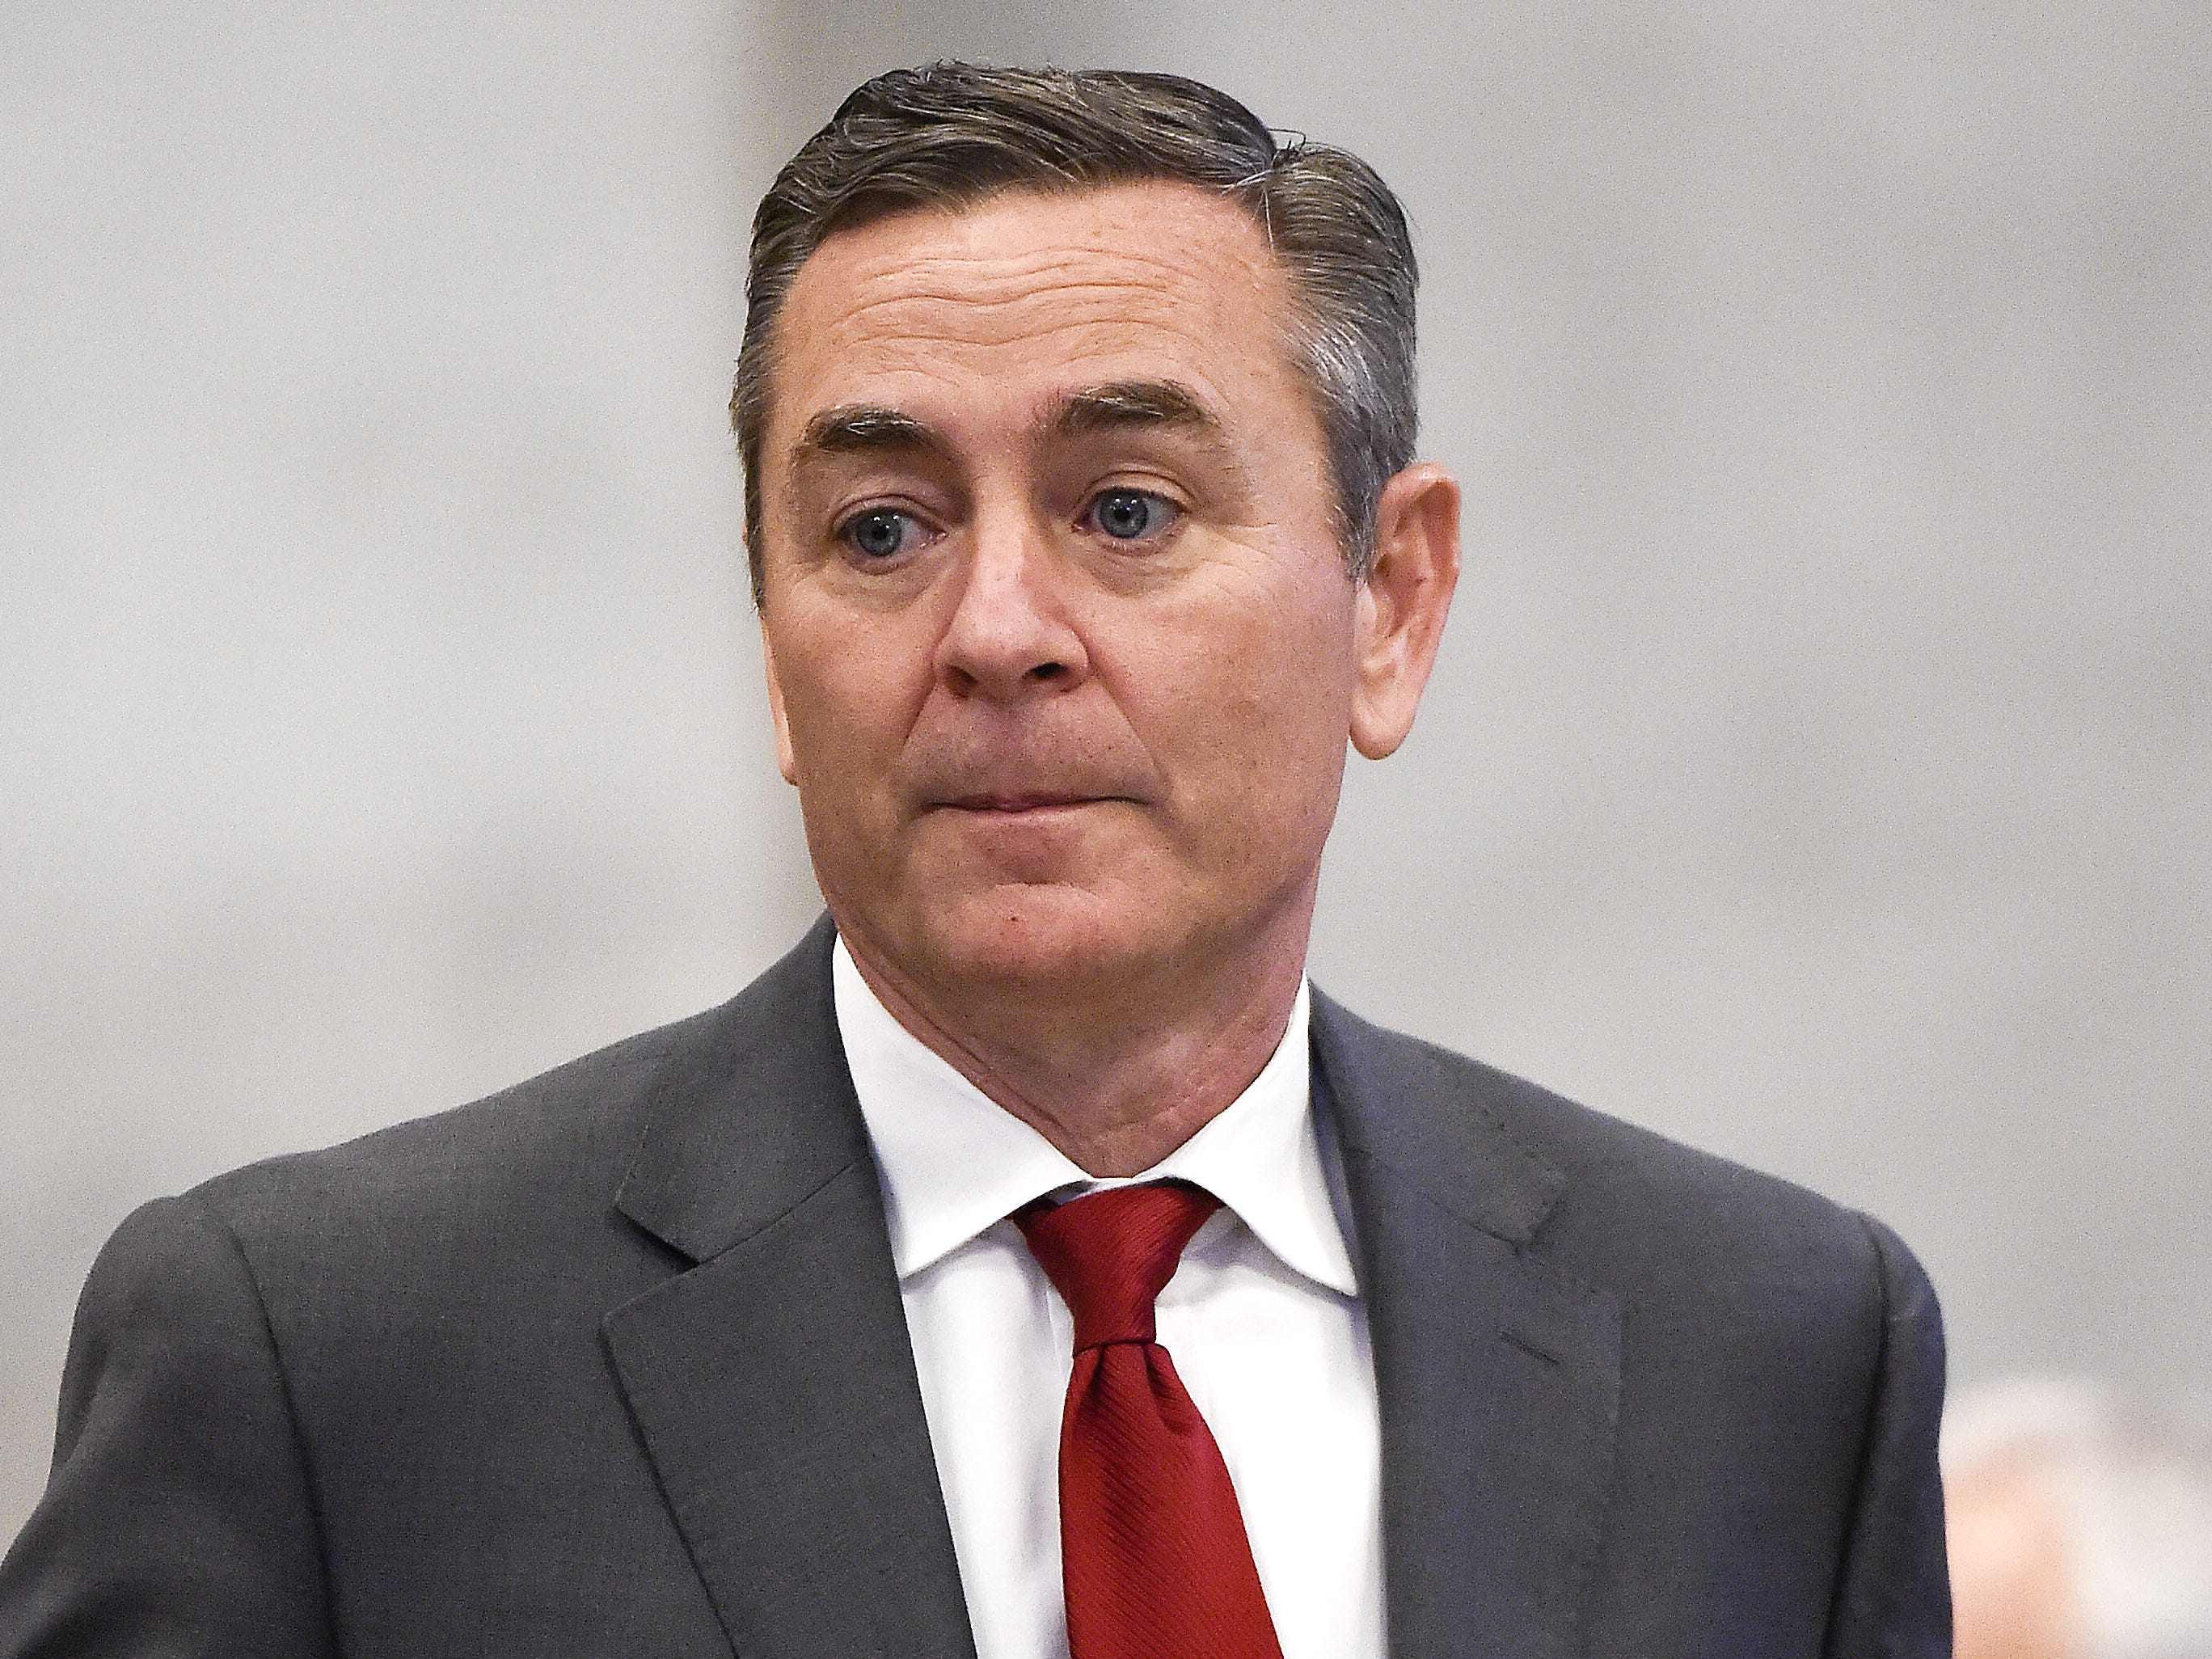 State Rep. Glen Casada conducts business in the final days of the 2016 legislative session April 19, 2016.